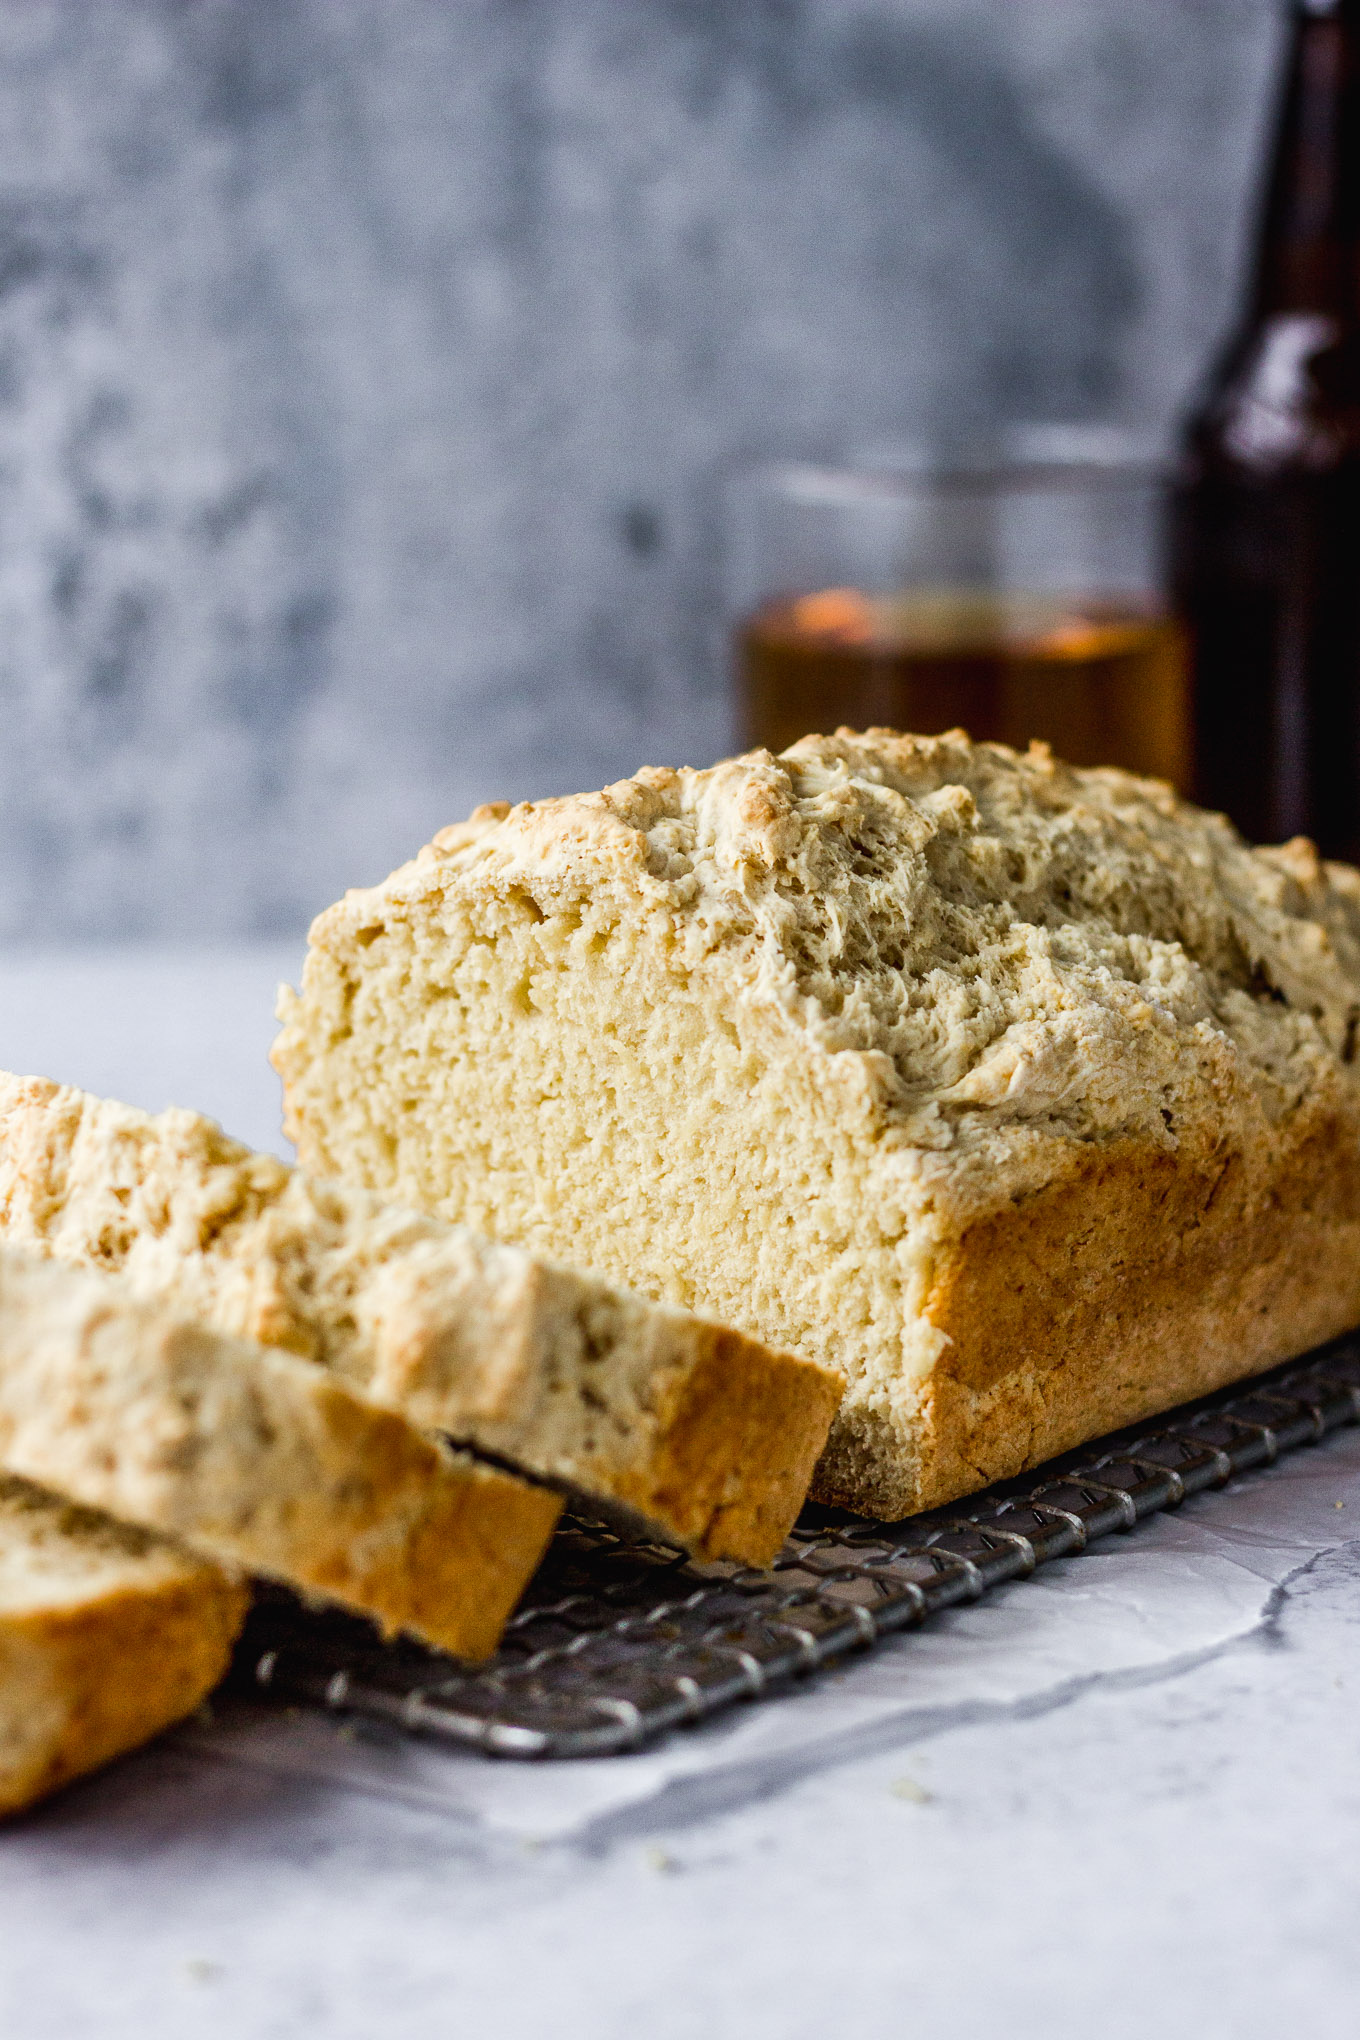 beer bread loaf sliced next to beer